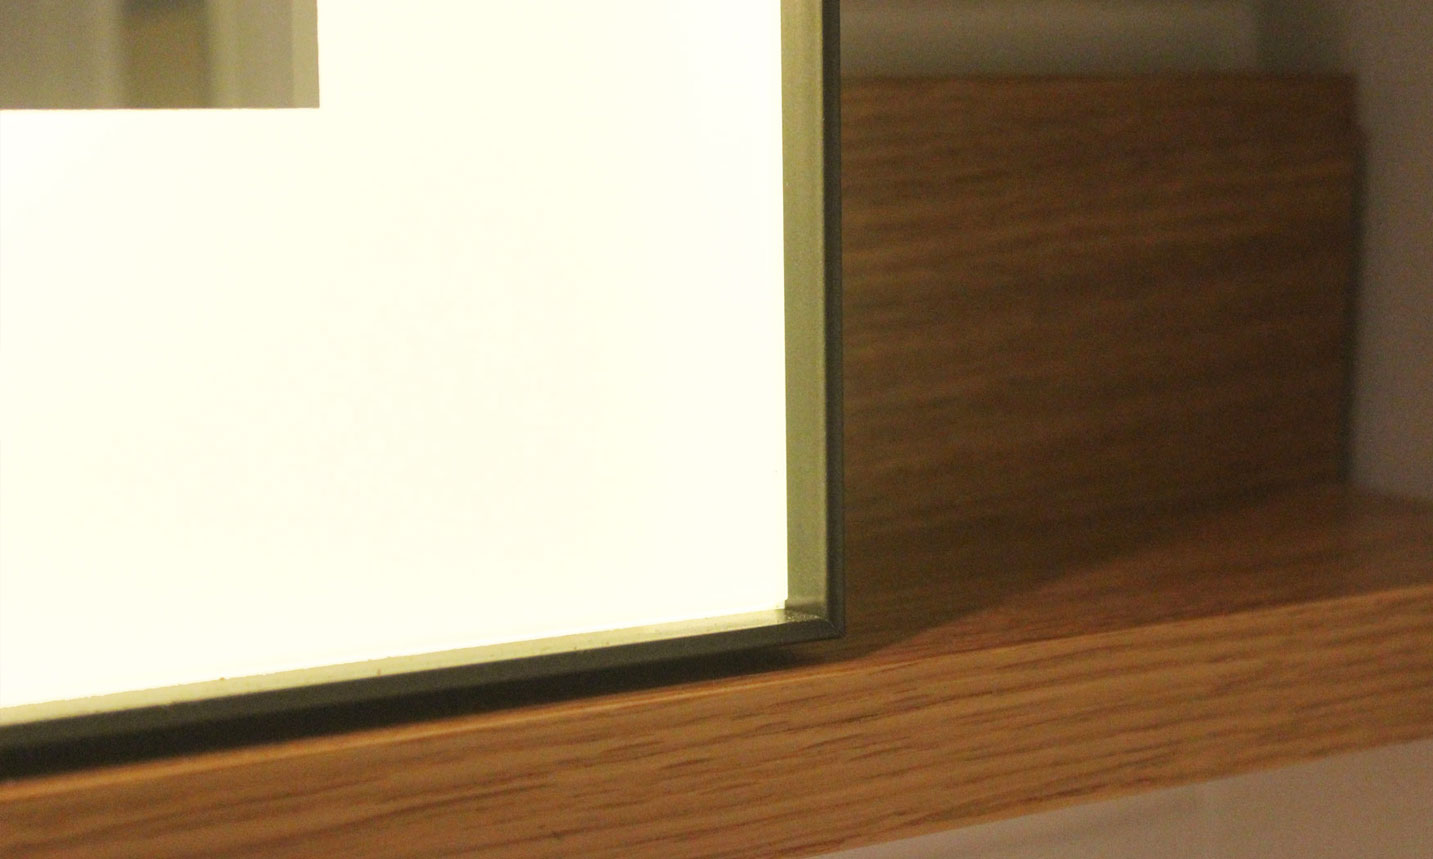 The Edge Metal Frame Lighted Mirror pictured in a 5 star hotel bathroom, corner close up.